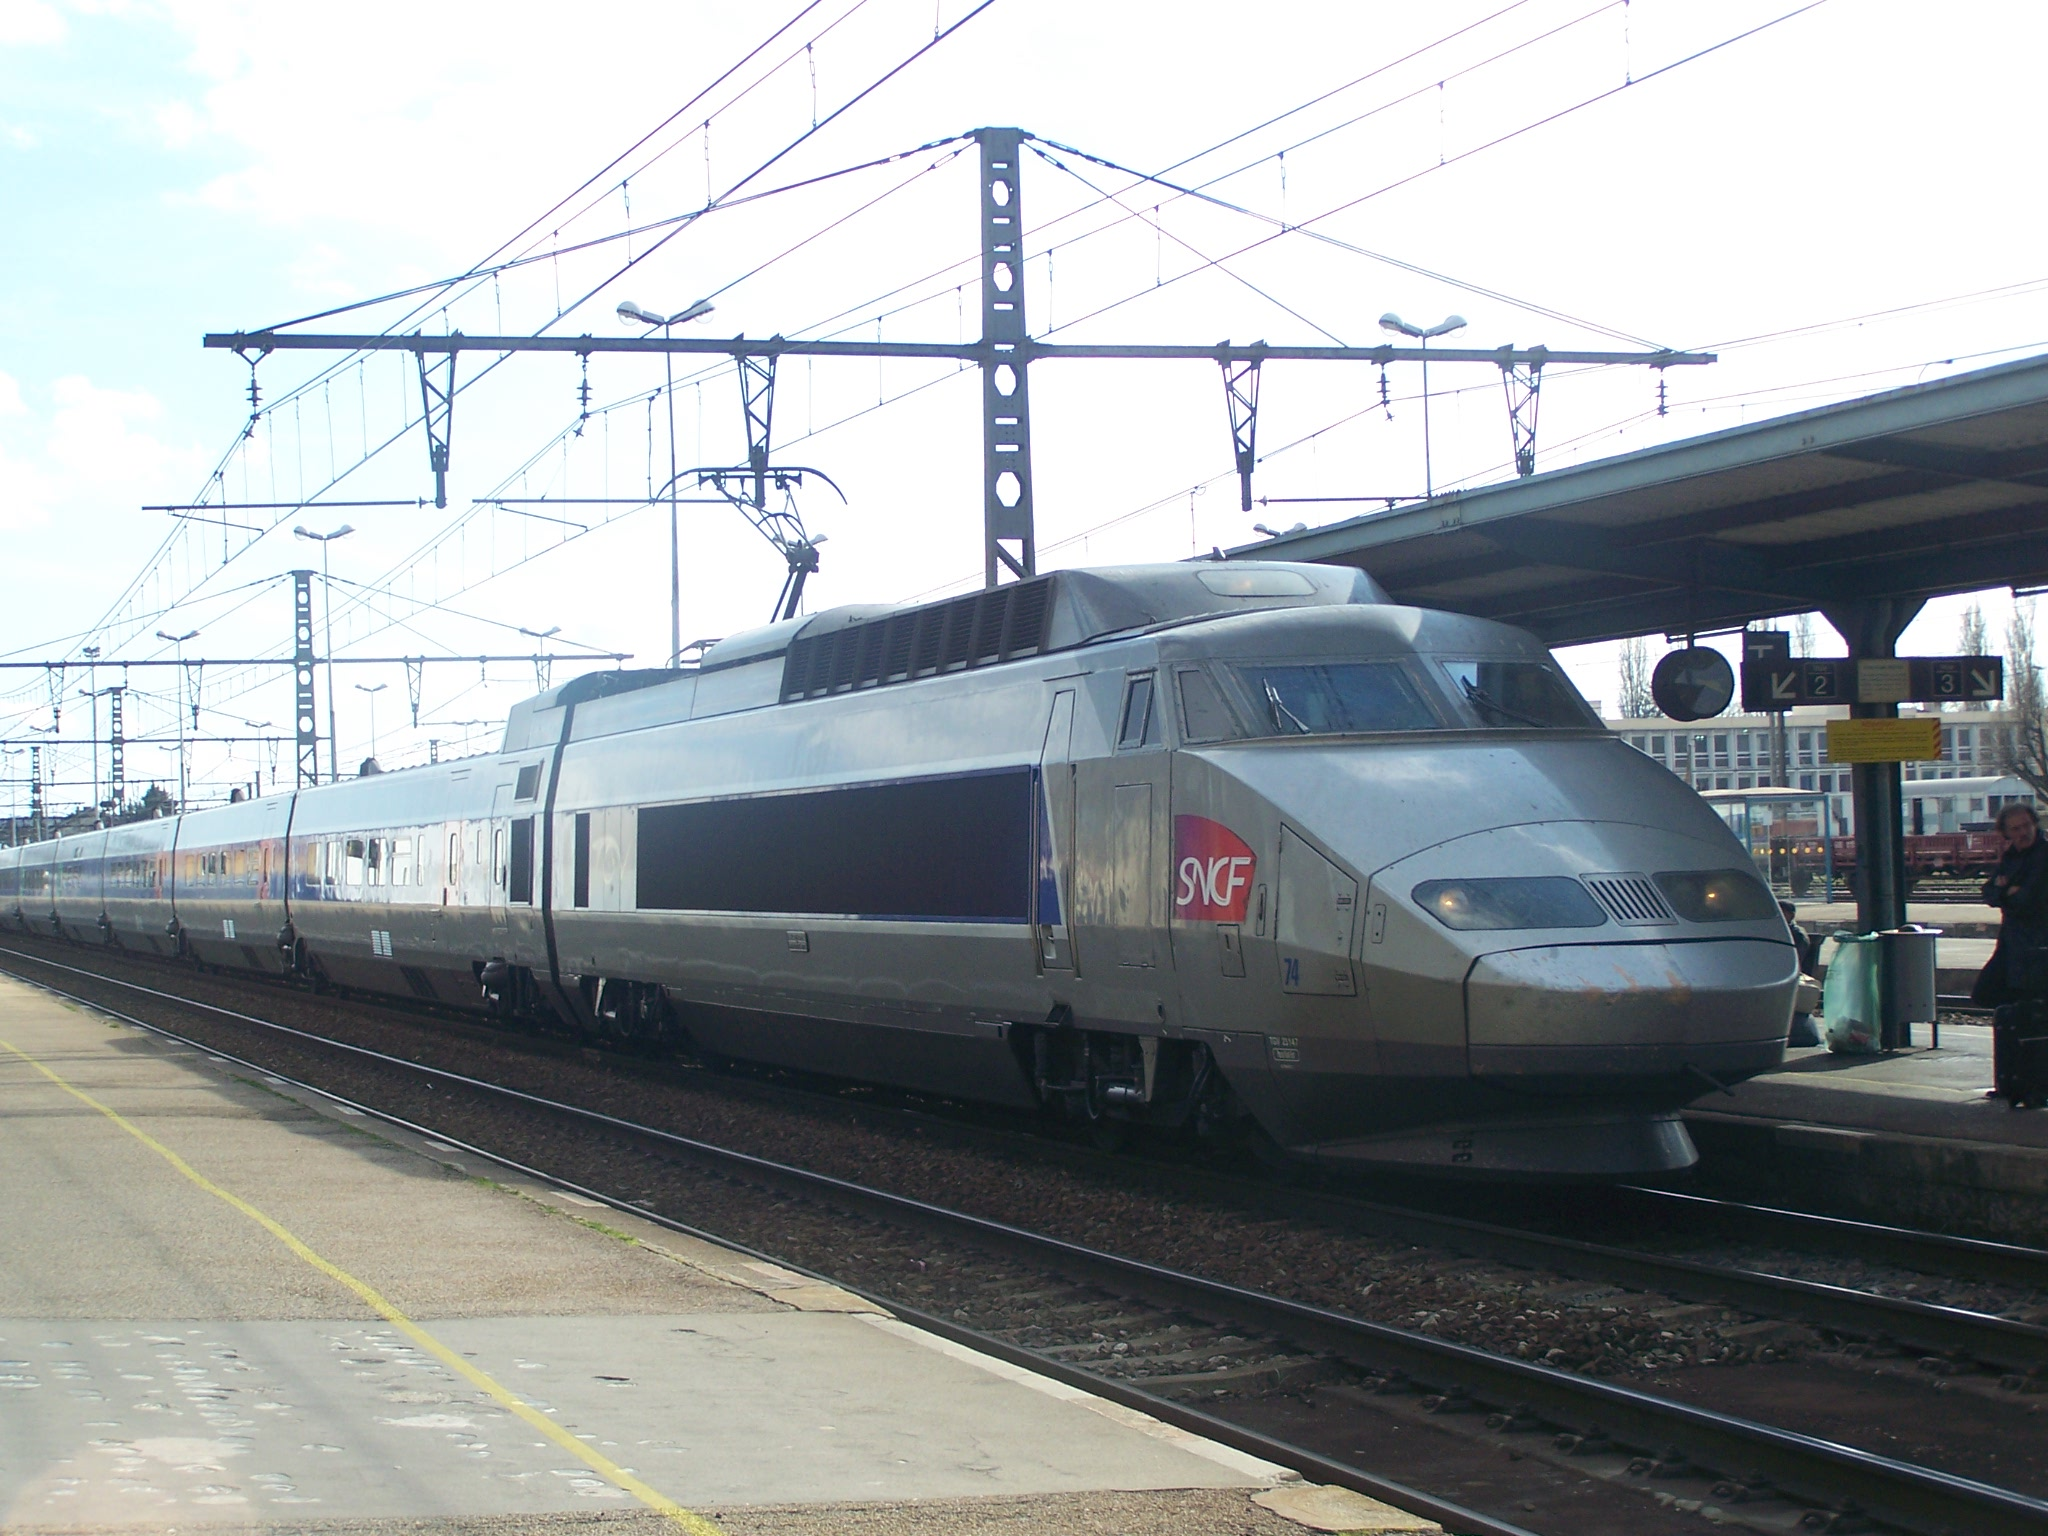 Tgv strasbourg marseille ihre fotos und videos schneller - Salon marseille train ...